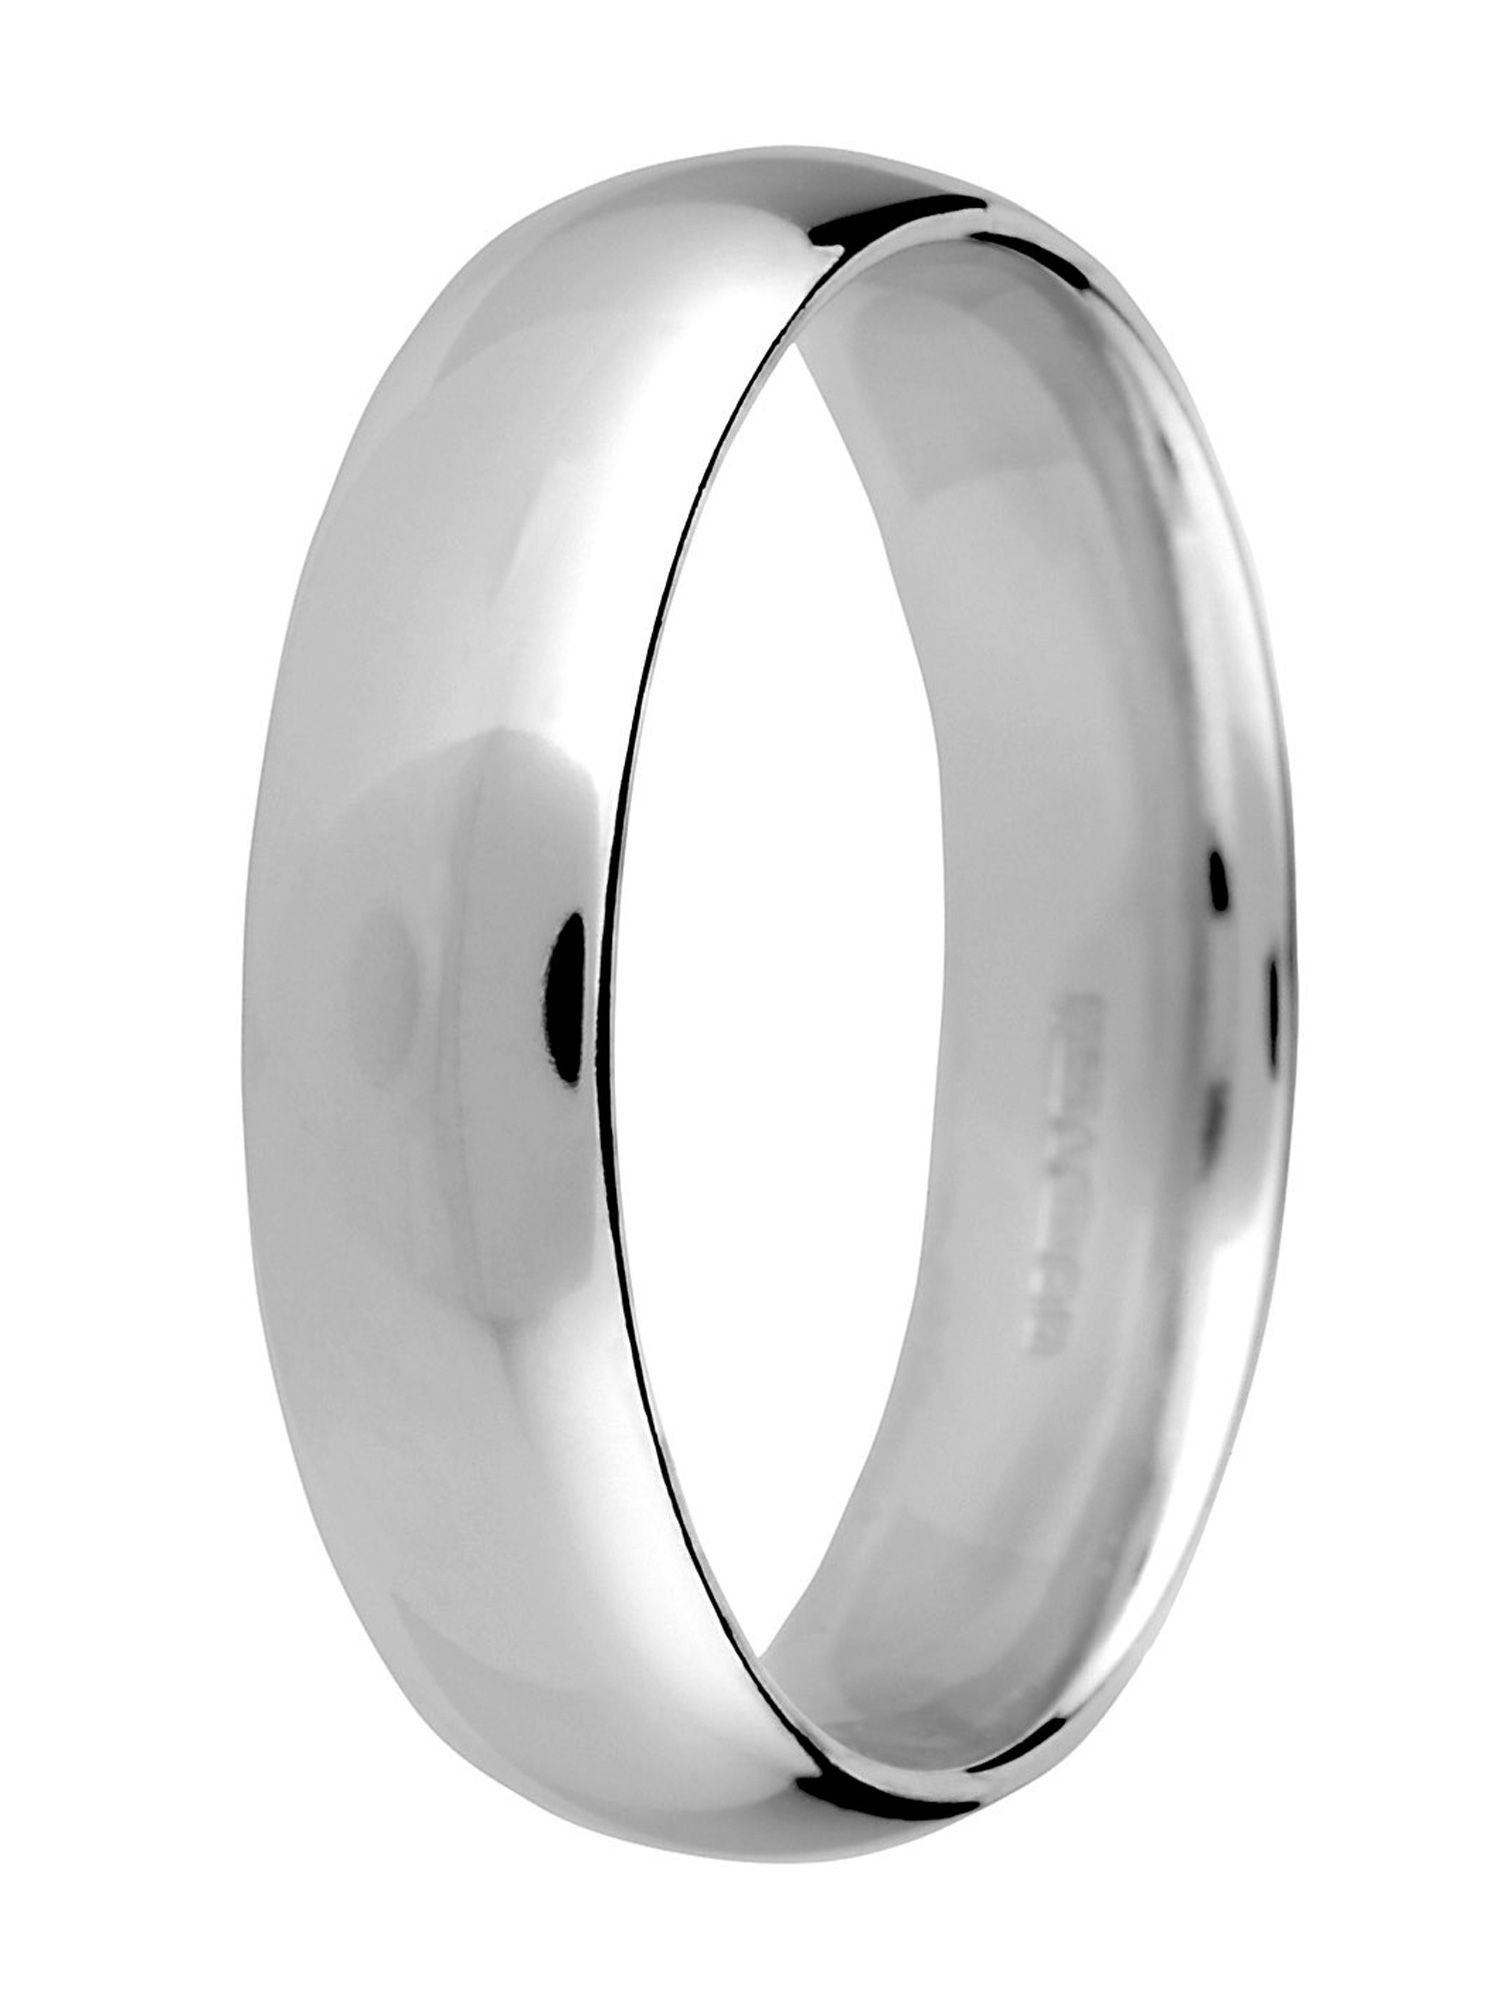 Grooms platinum 5mm court wedding ring - Silver